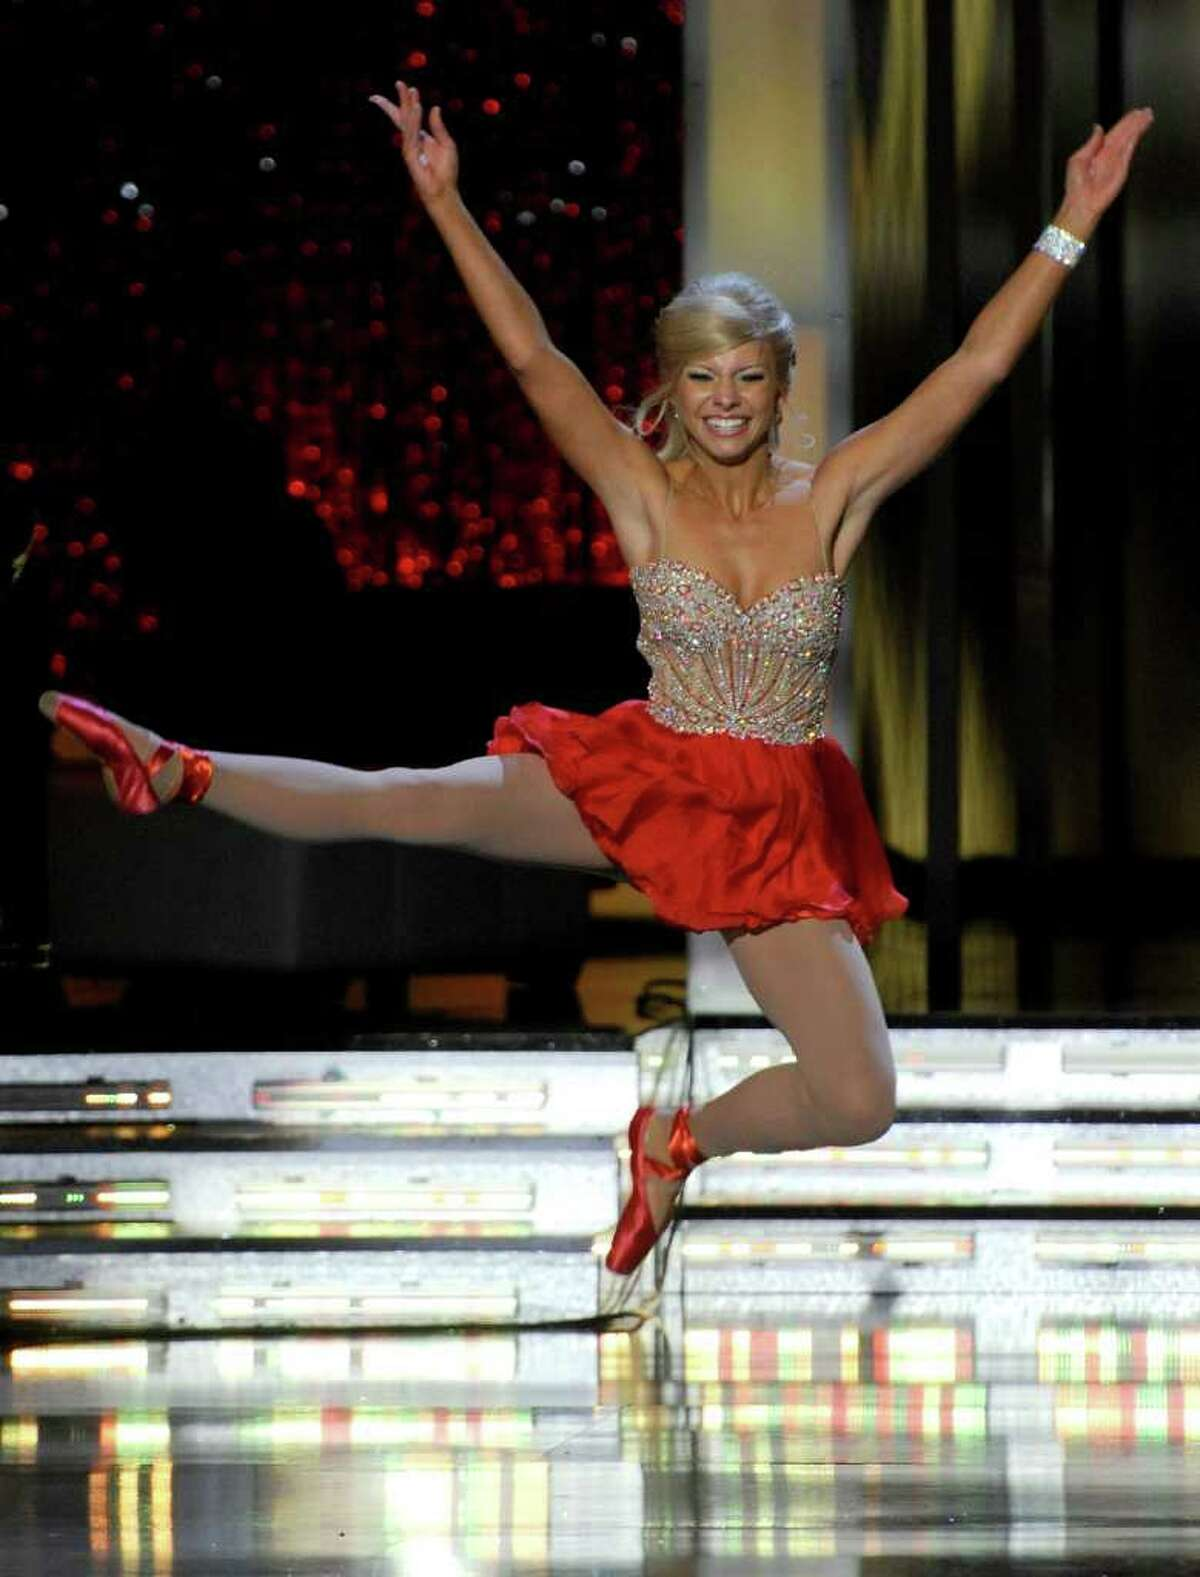 LAS VEGAS, NV - JANUARY 15: Kayla Martell, Miss Delaware, dances in the talent competition during the 2011 Miss America Pageant at the Planet Hollywood Resort & Casino January 15, 2011 in Las Vegas, Nevada. (Photo by Ethan Miller/Getty Images) *** Local Caption *** Kayla Martell